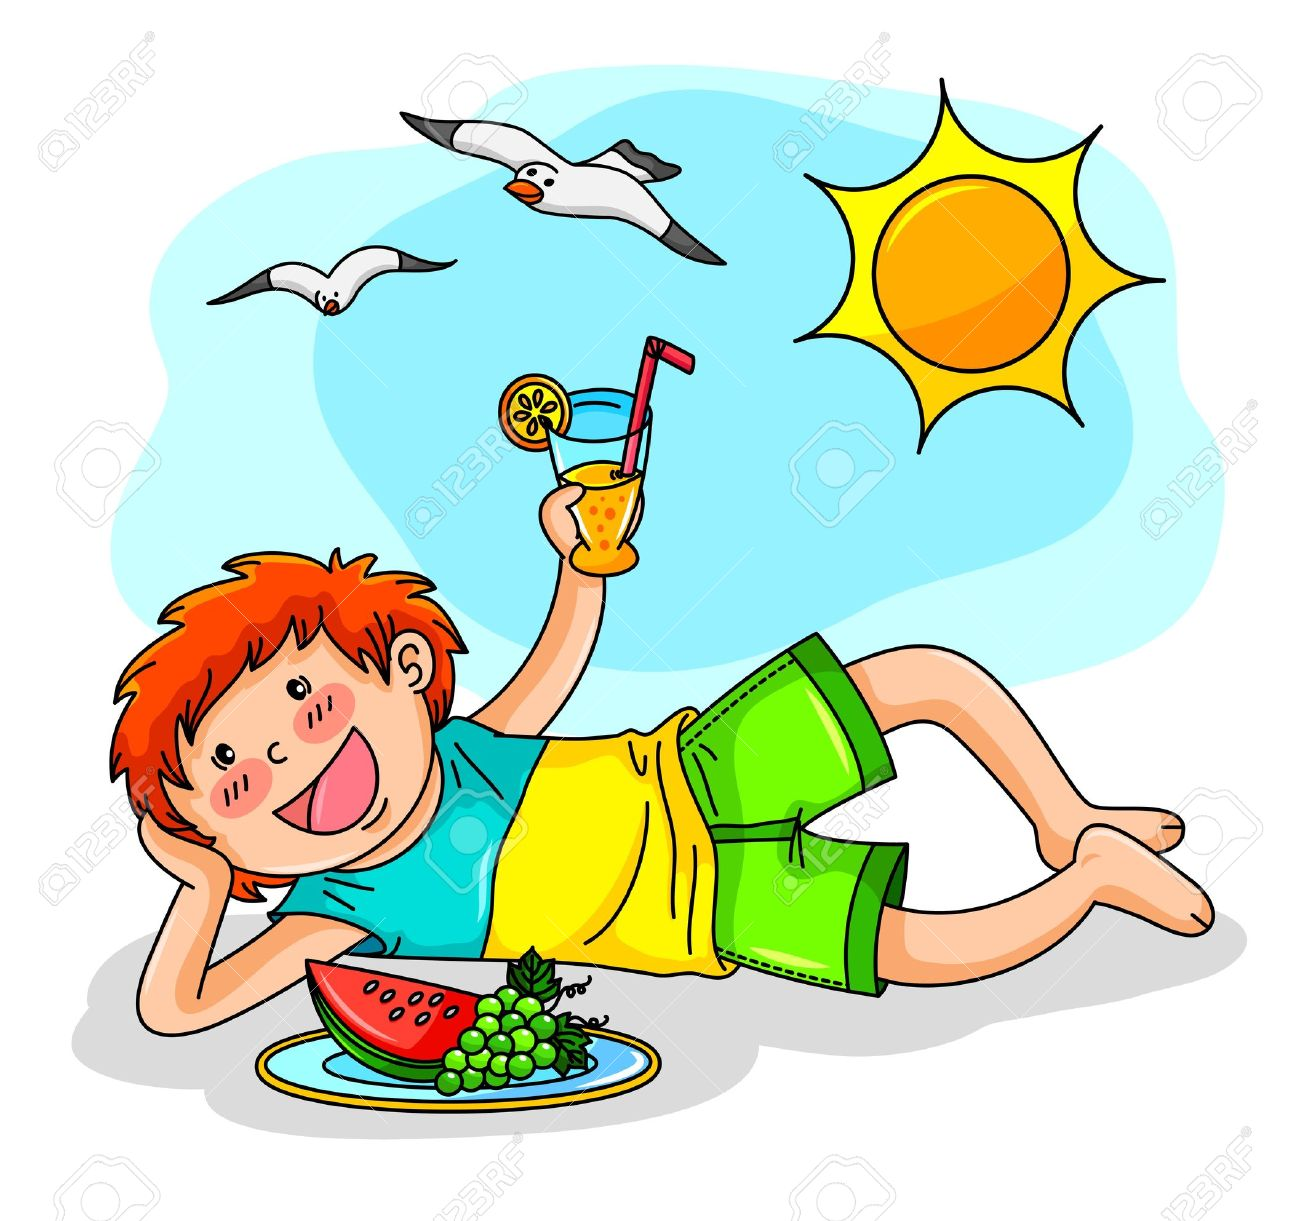 Summer Cartoon Pictures | Free download on ClipArtMag